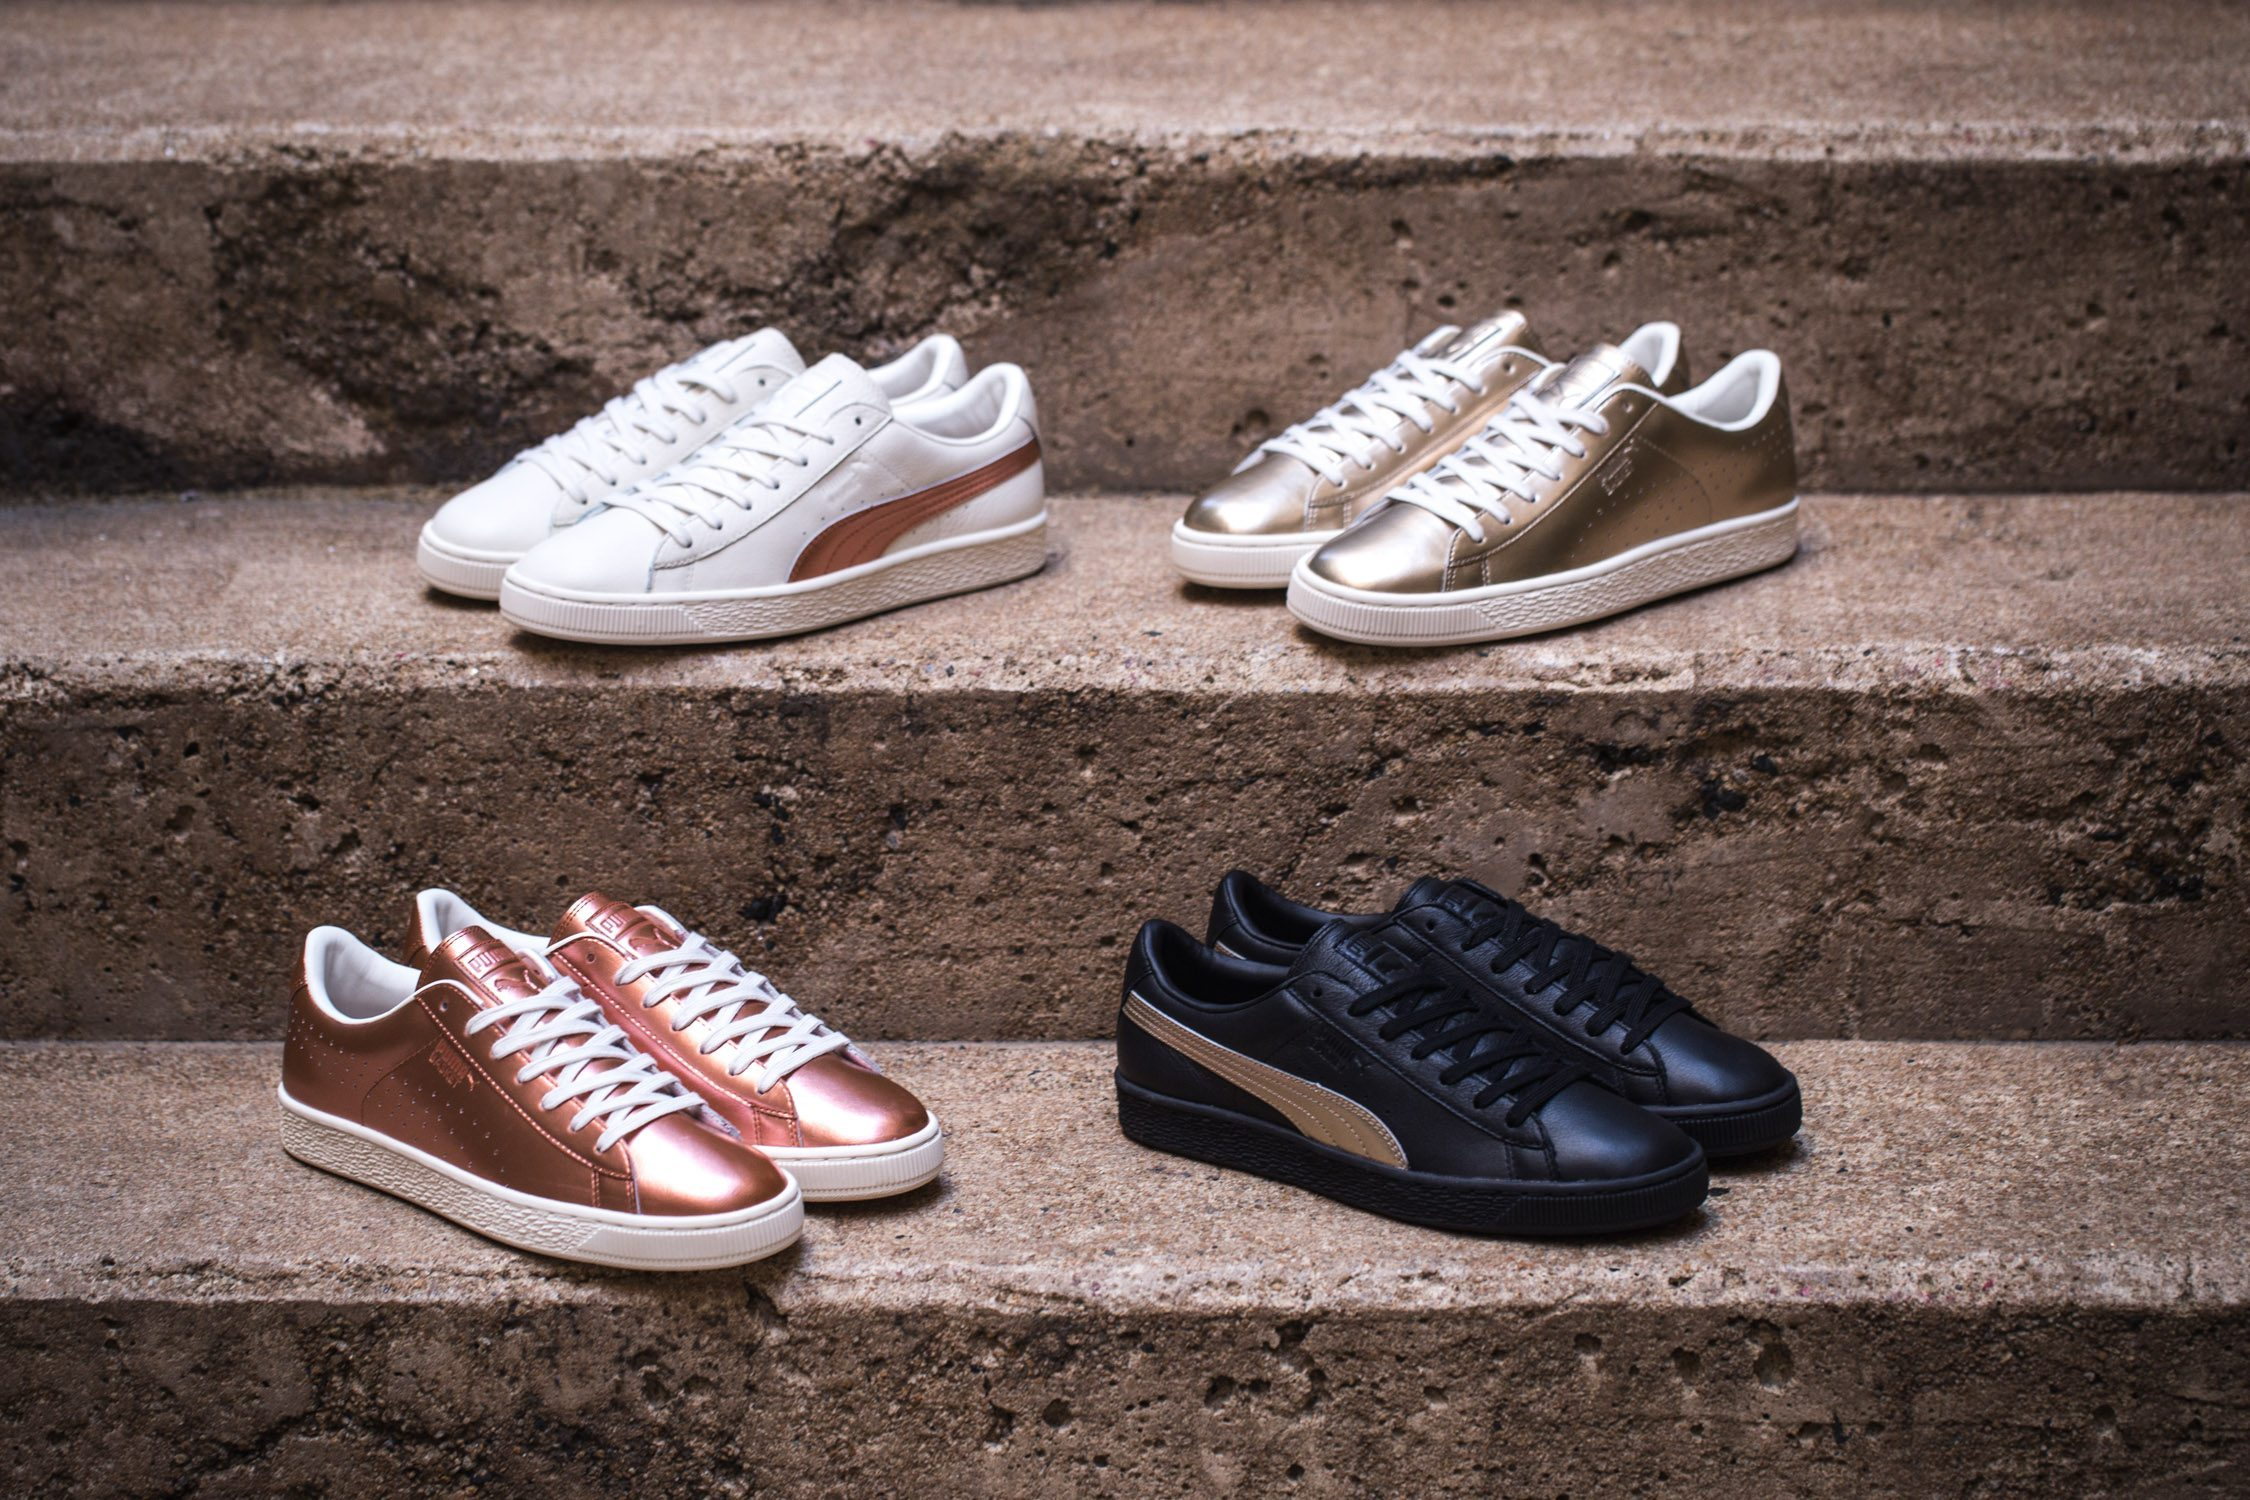 SNIPES x PUMA Basket Metallic Pack 4